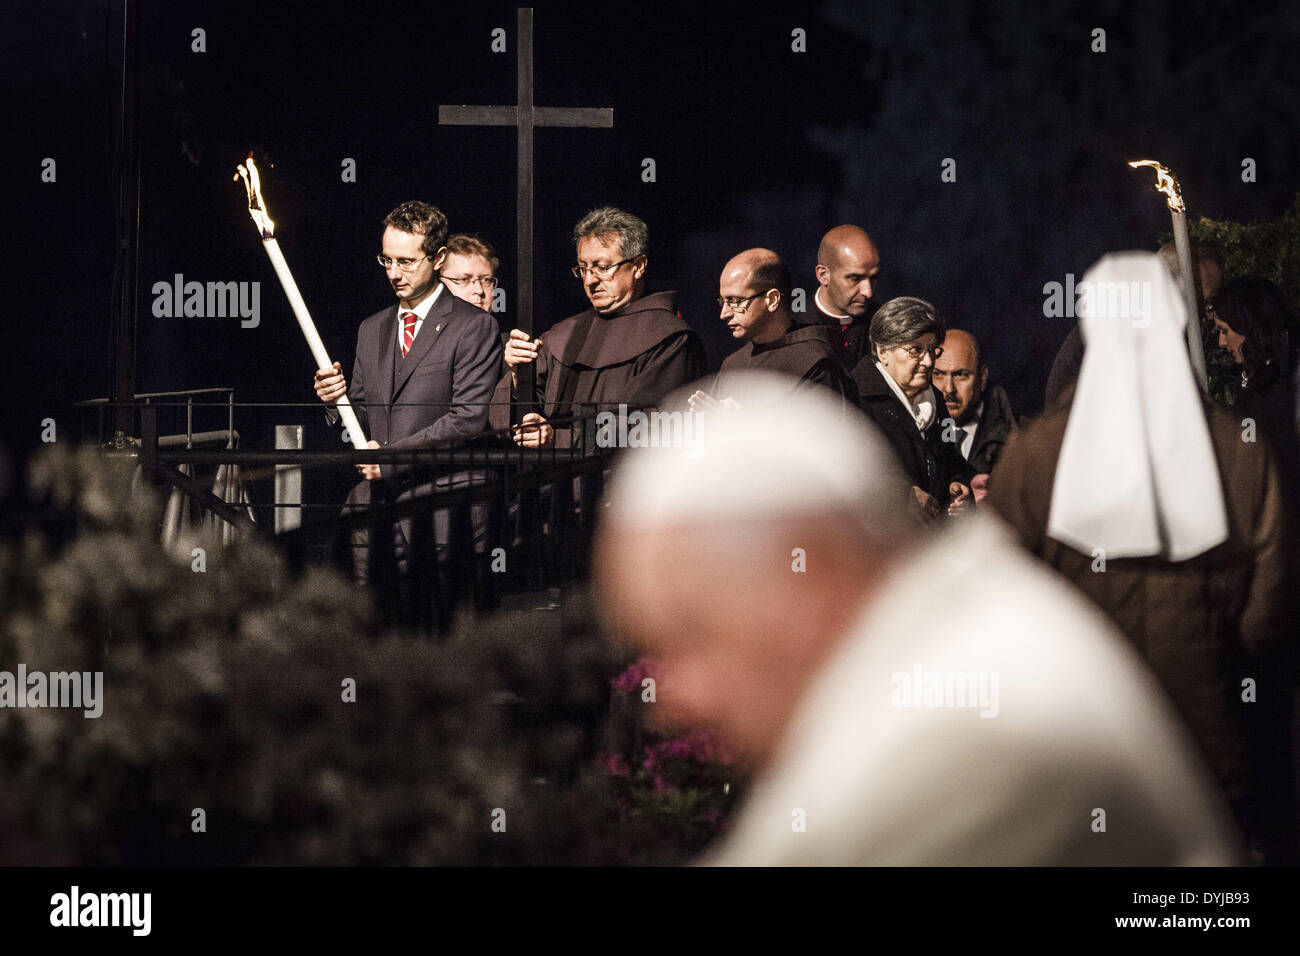 "April 18, 2014 - Rome, Italy """""" April 18, 2014: Faithful hold the cross during a station during the Via Crucis Stock Photo"